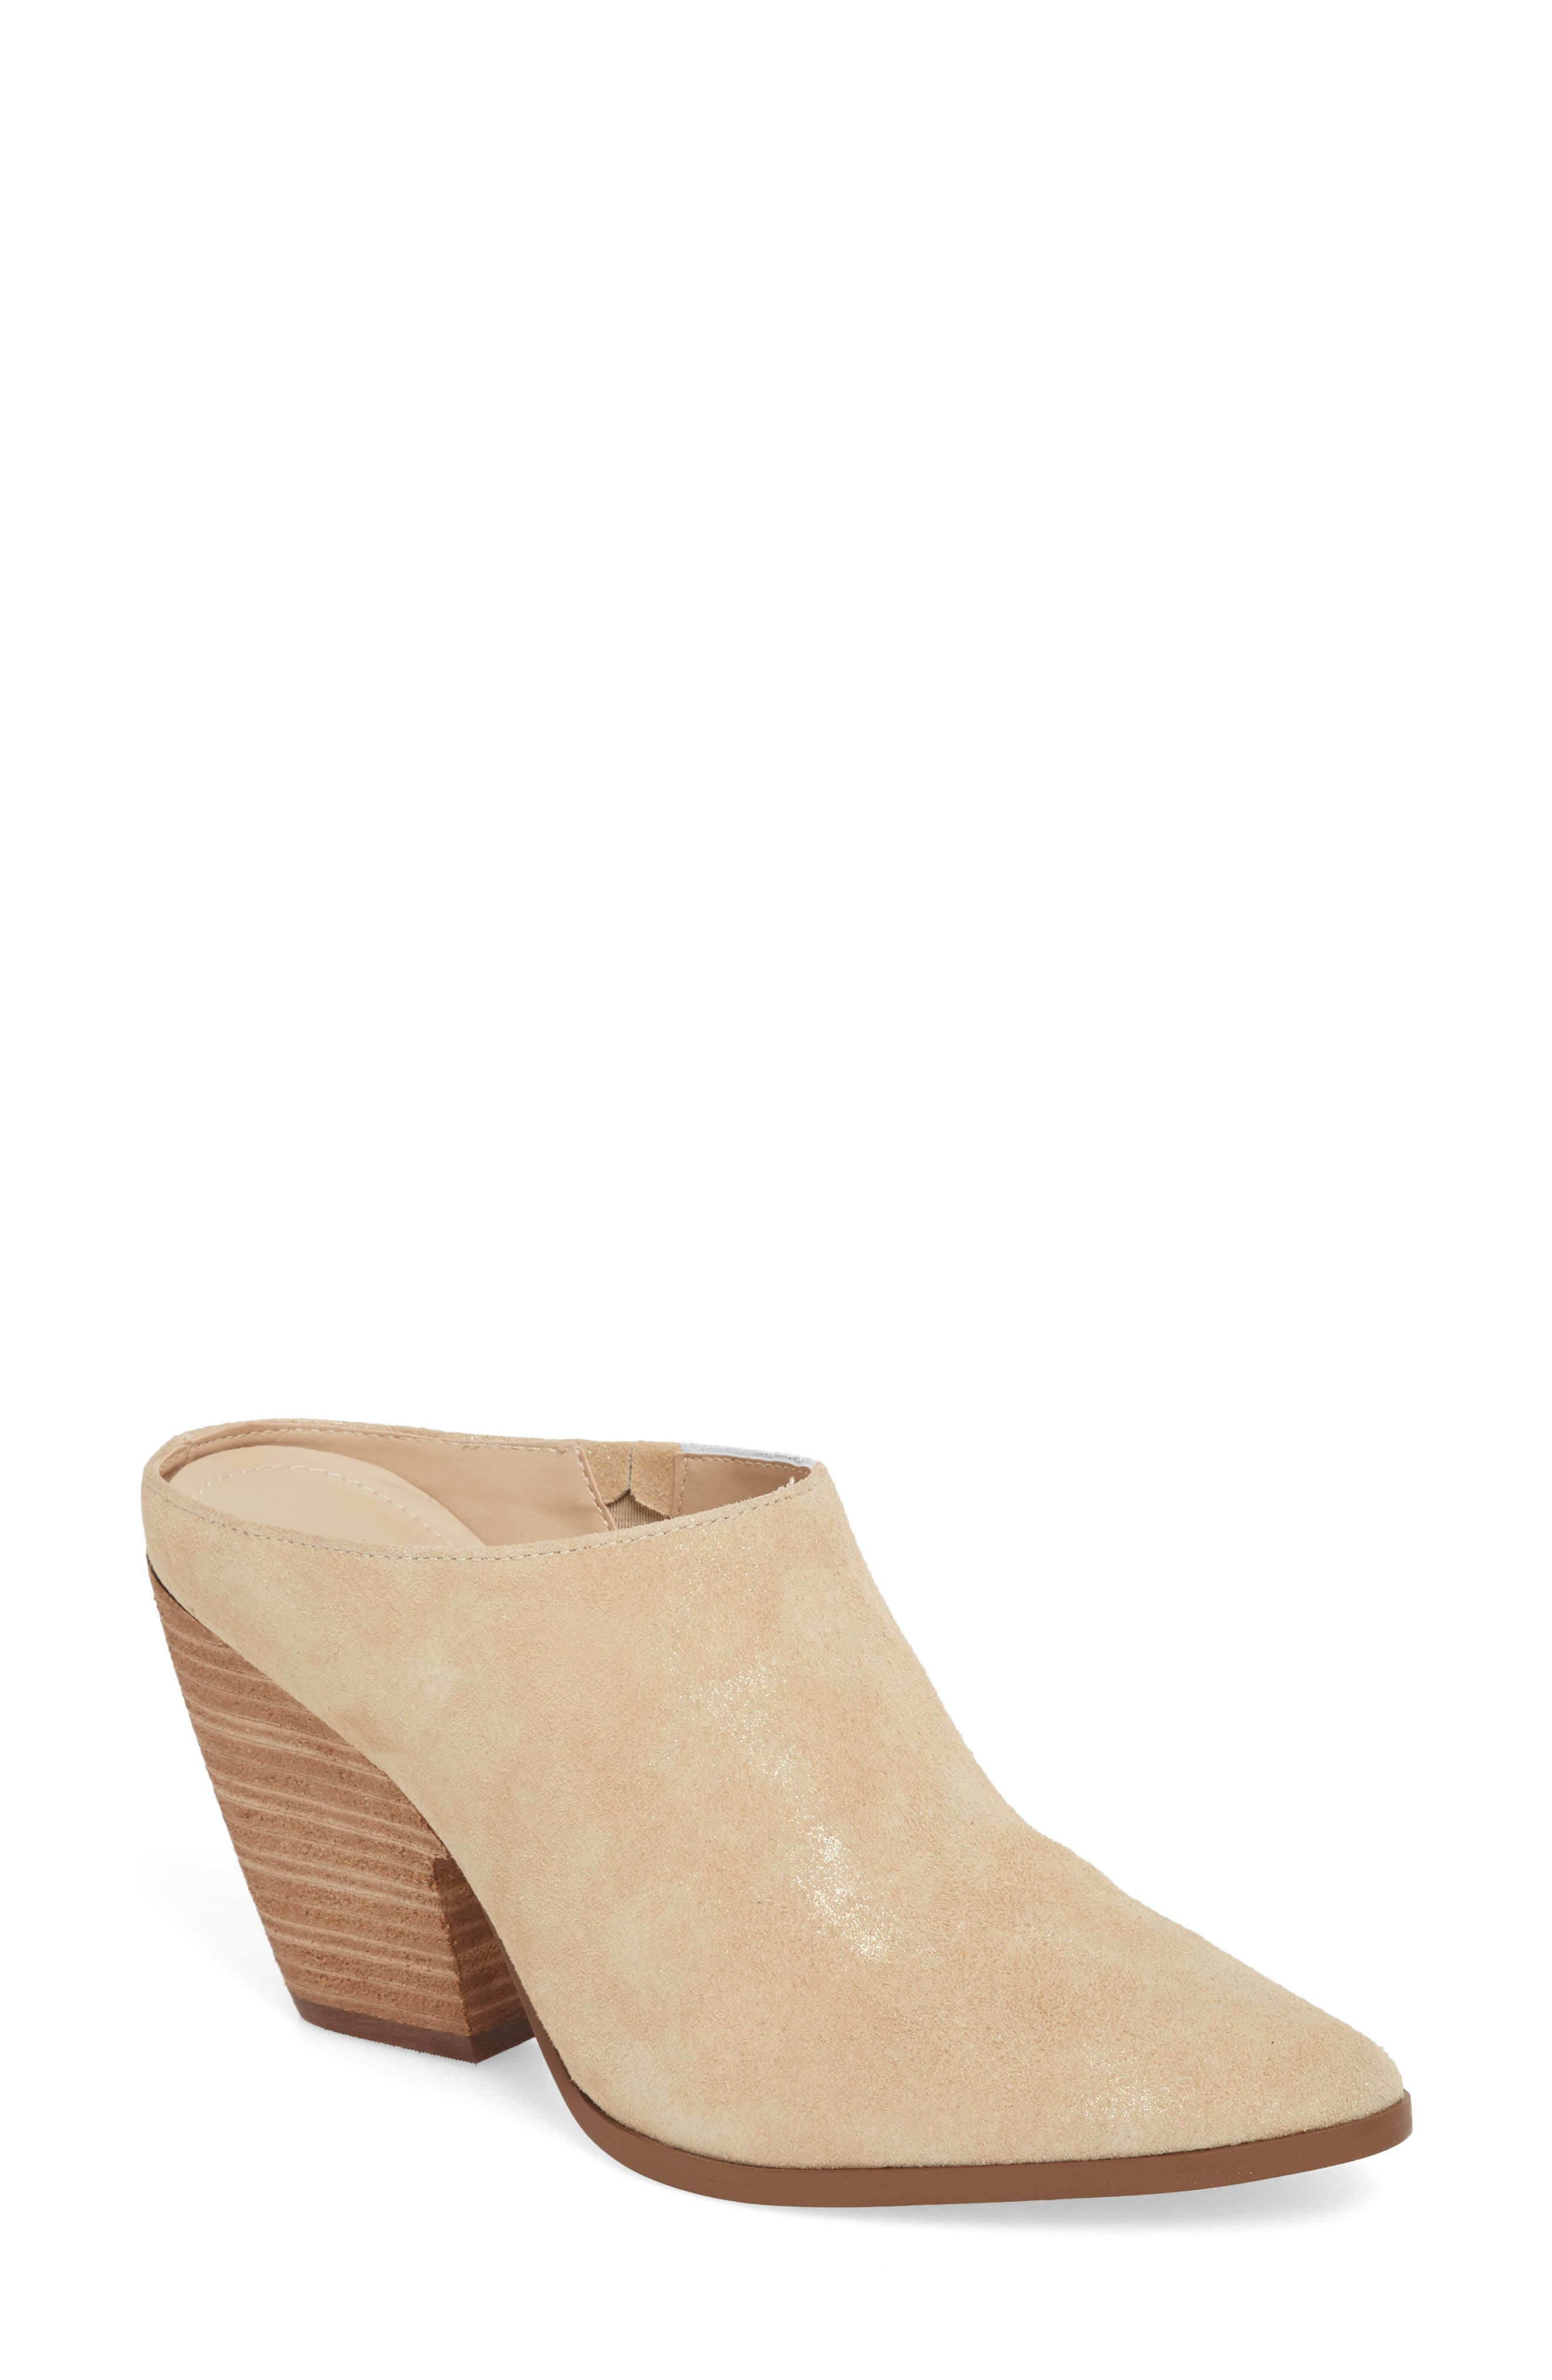 CHARLES BY CHARLES DAVID Nico Mule, Main, color, NUDE LIGHT GOLD SUEDE